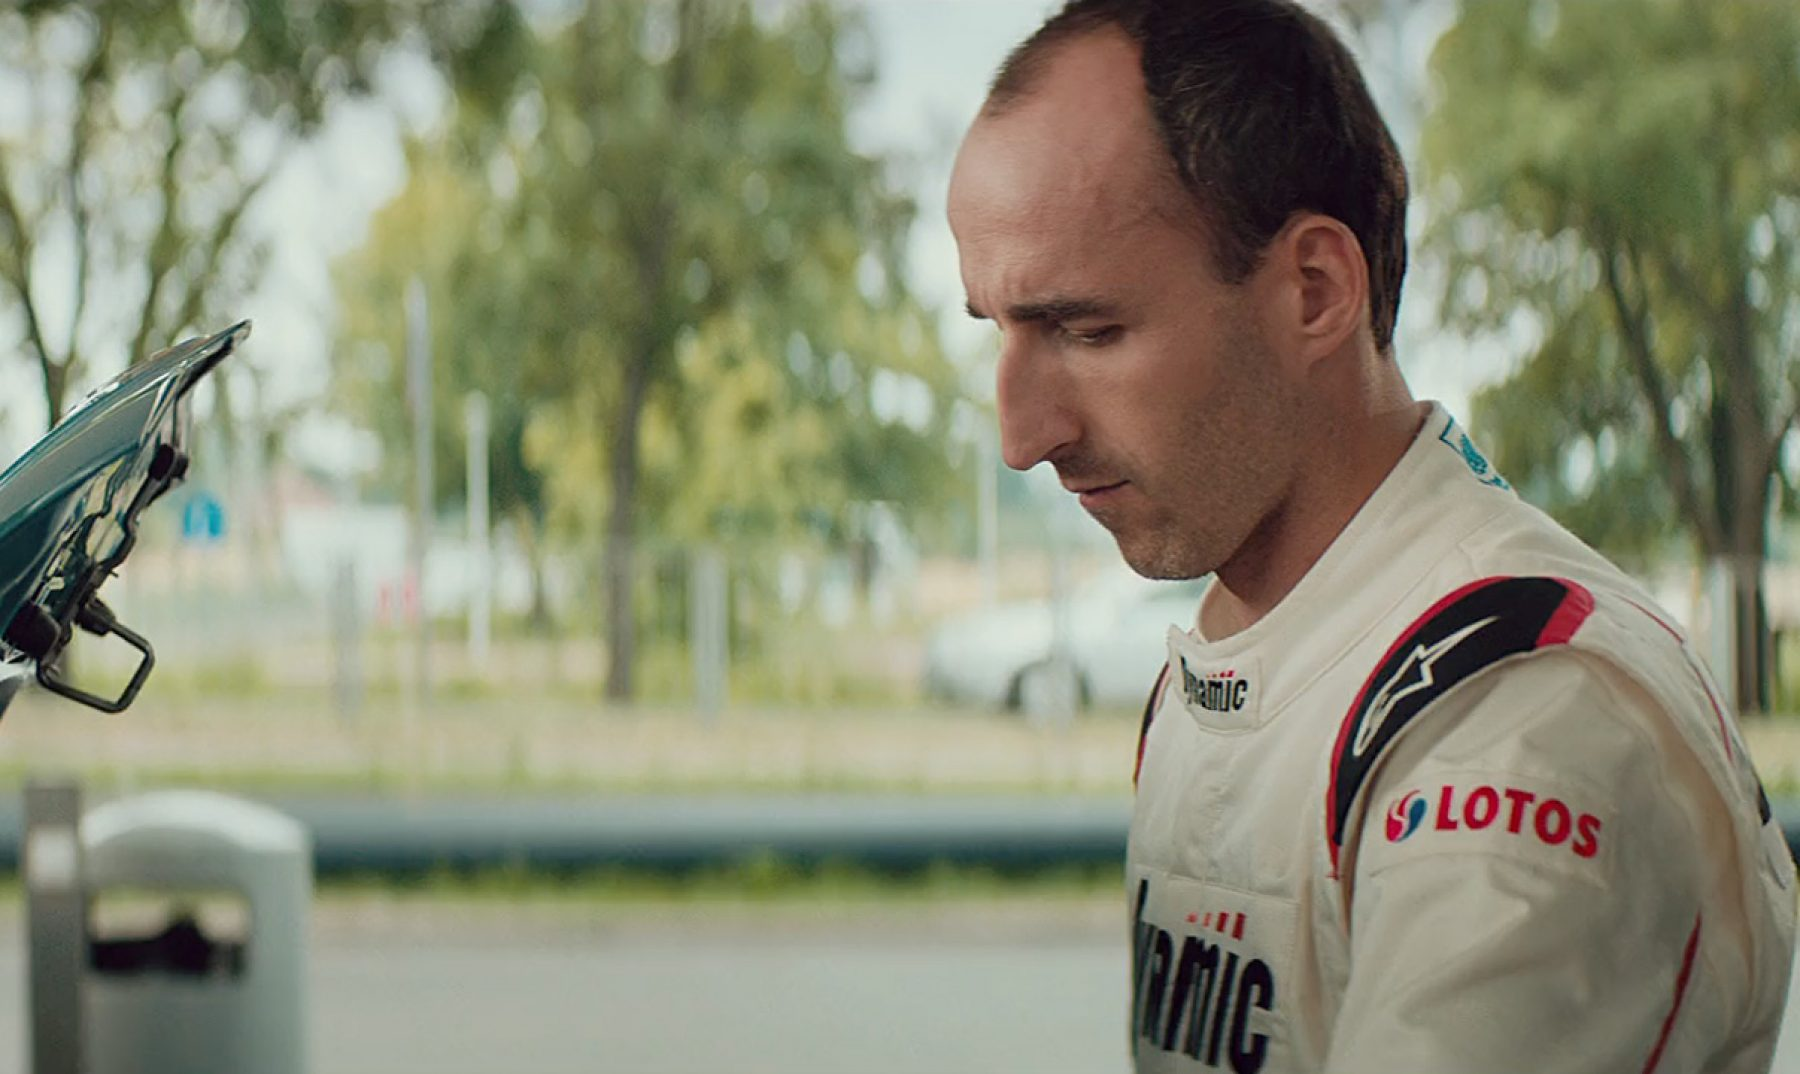 llts-kubica-hd720_0000s_0006_Screenshot 2018-08-23 13.03.58